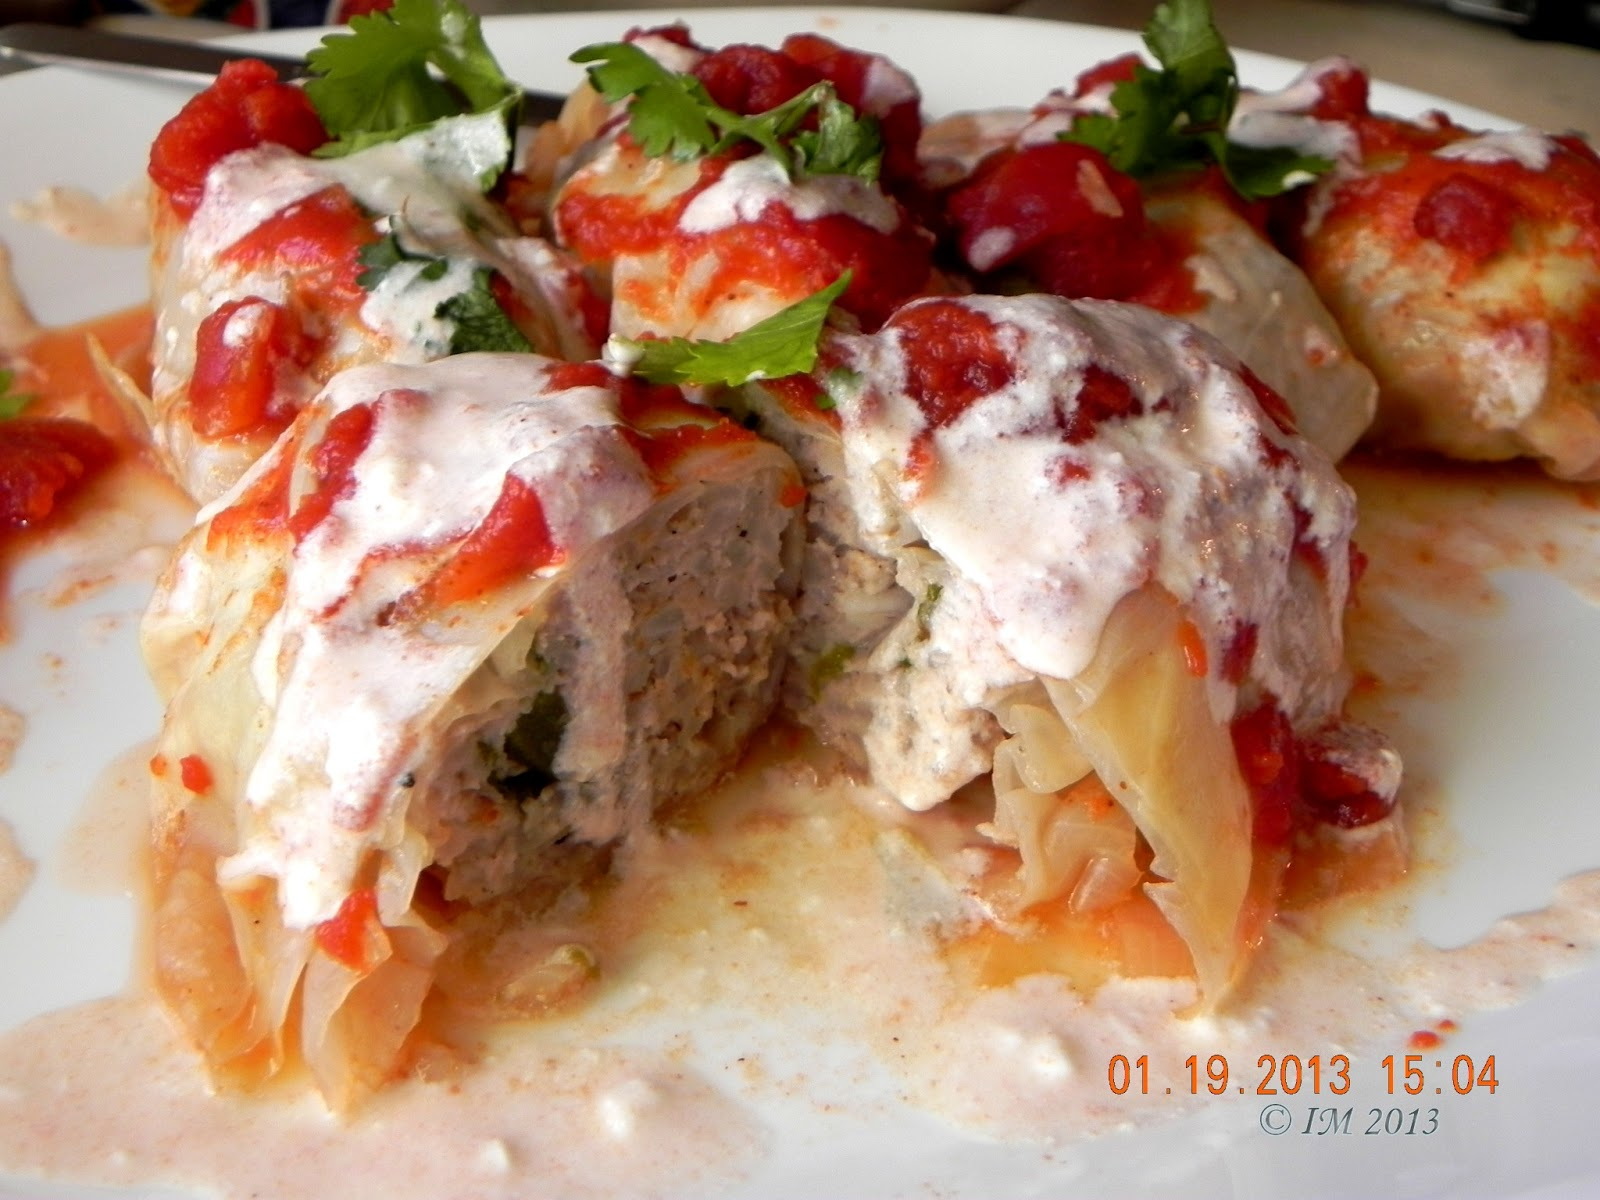 beyond foods: Stuffed Cabbage Rolls (Galumpkis)